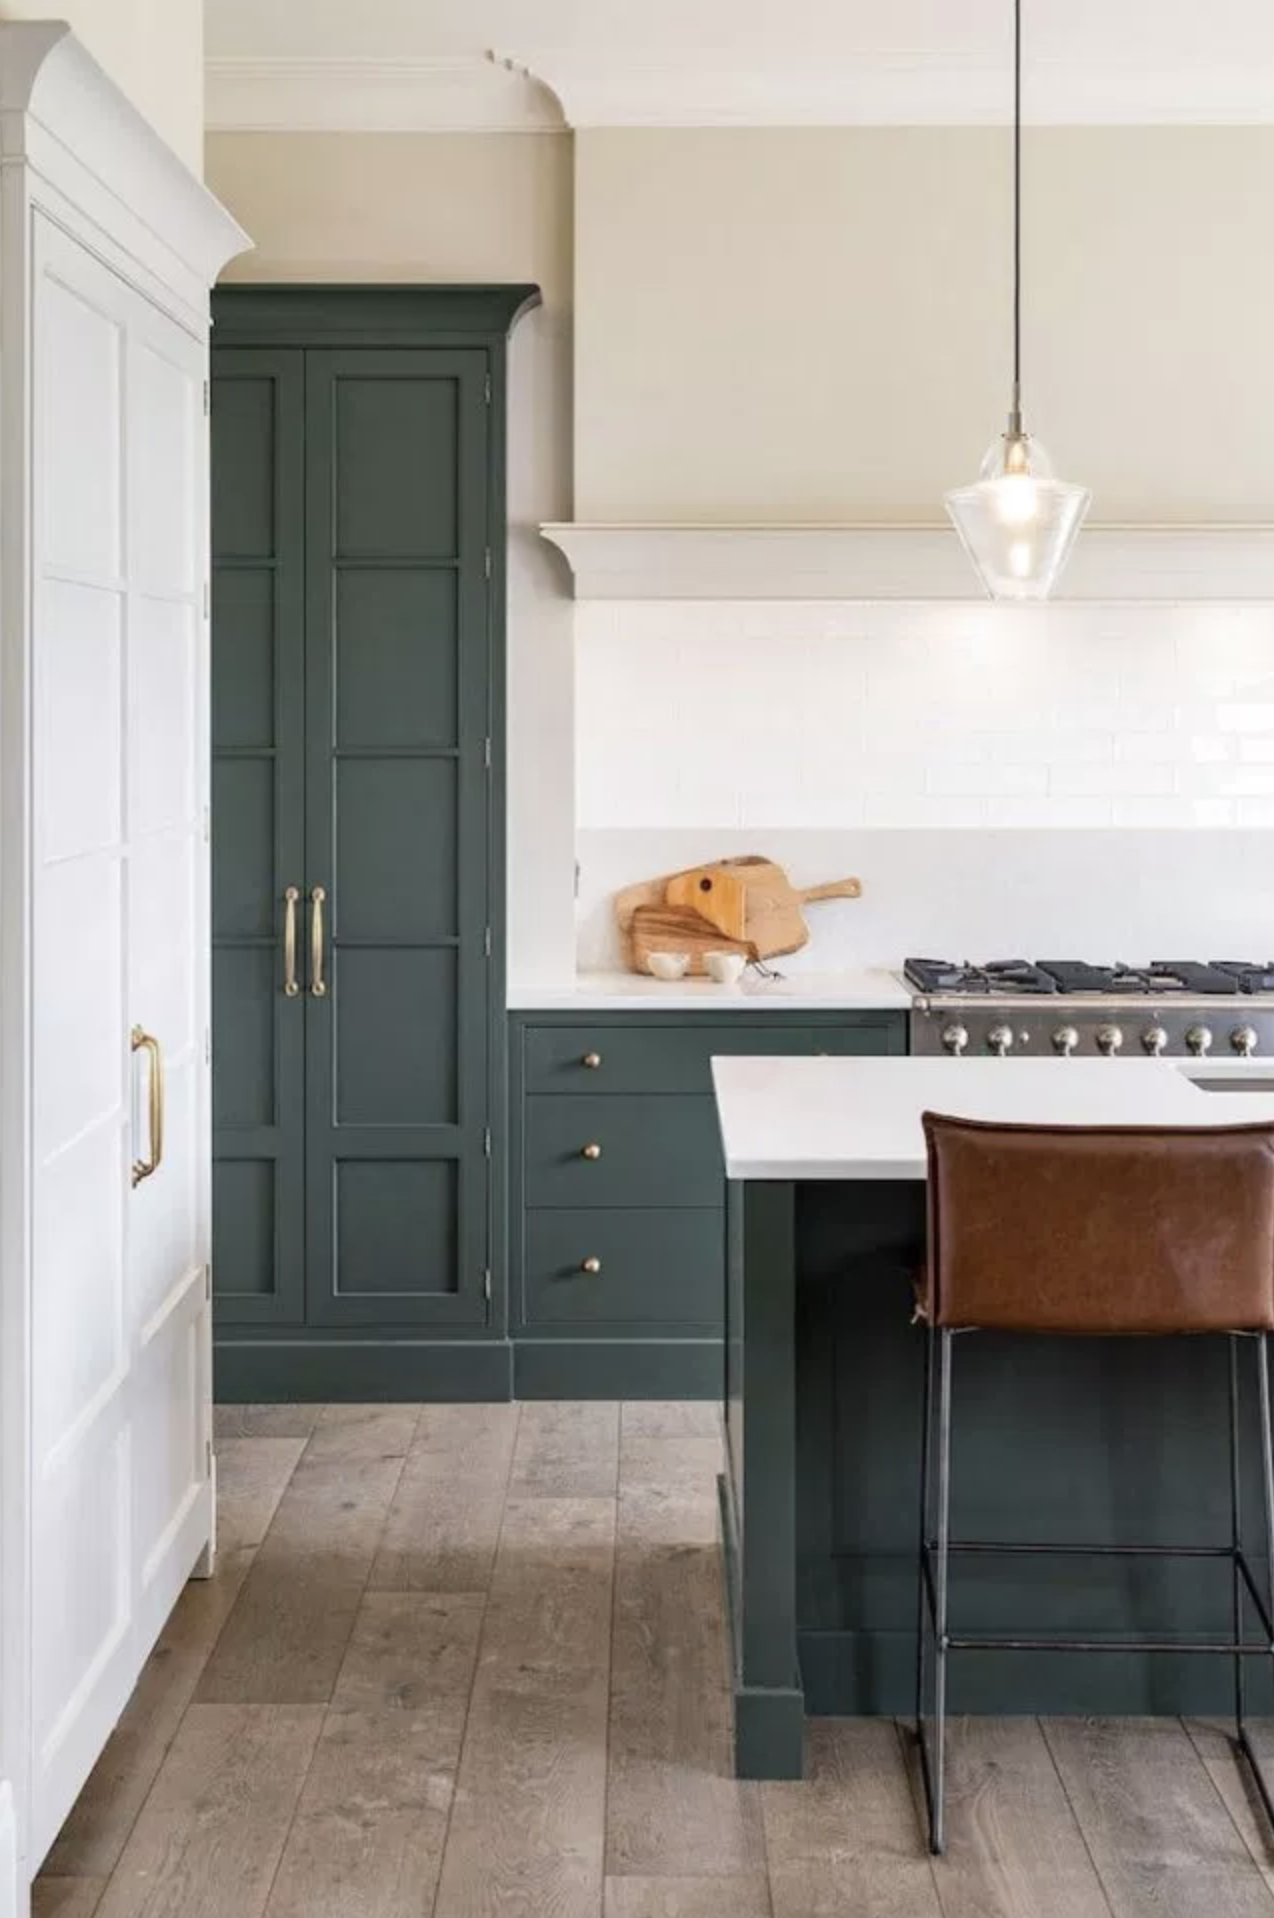 The Best Kitchen Paint Colors In 2019 Green Kitchen Cabinets